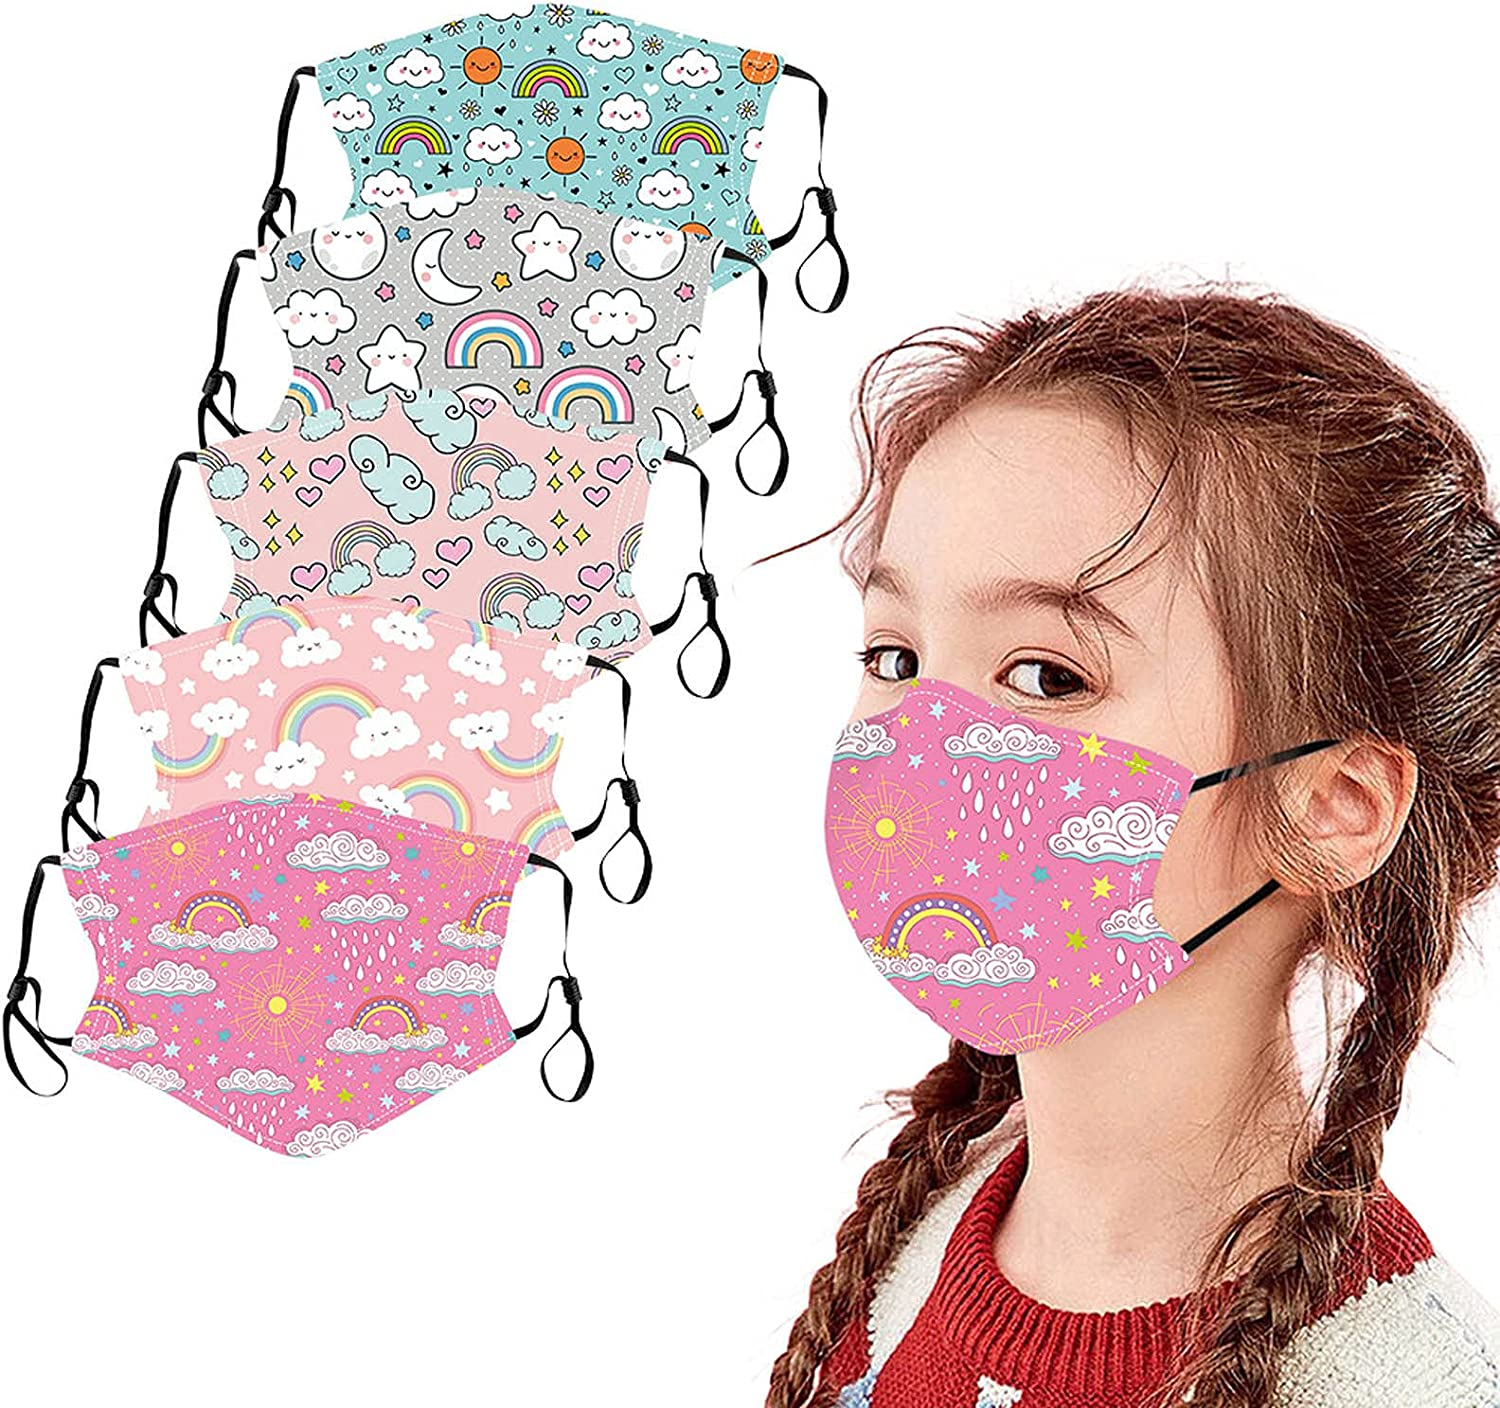 Kids Face San Francisco Mall Mask 5 Max 86% OFF 6 Pcs Washable Reusable Cloth M Childrens